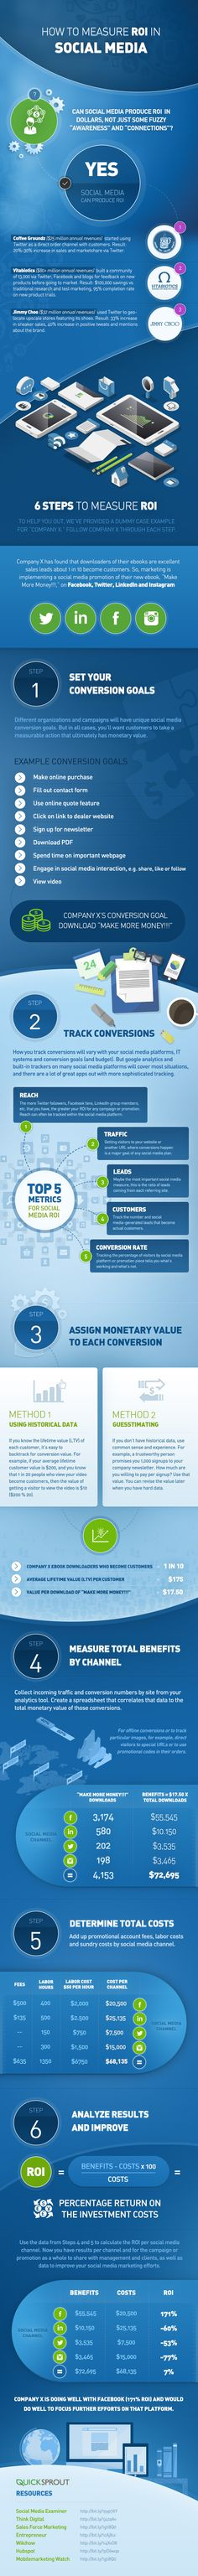 How to Measure the ROI of Your #SocialMedia #Marketing Campaigns - #infographic #SMM #Facebook